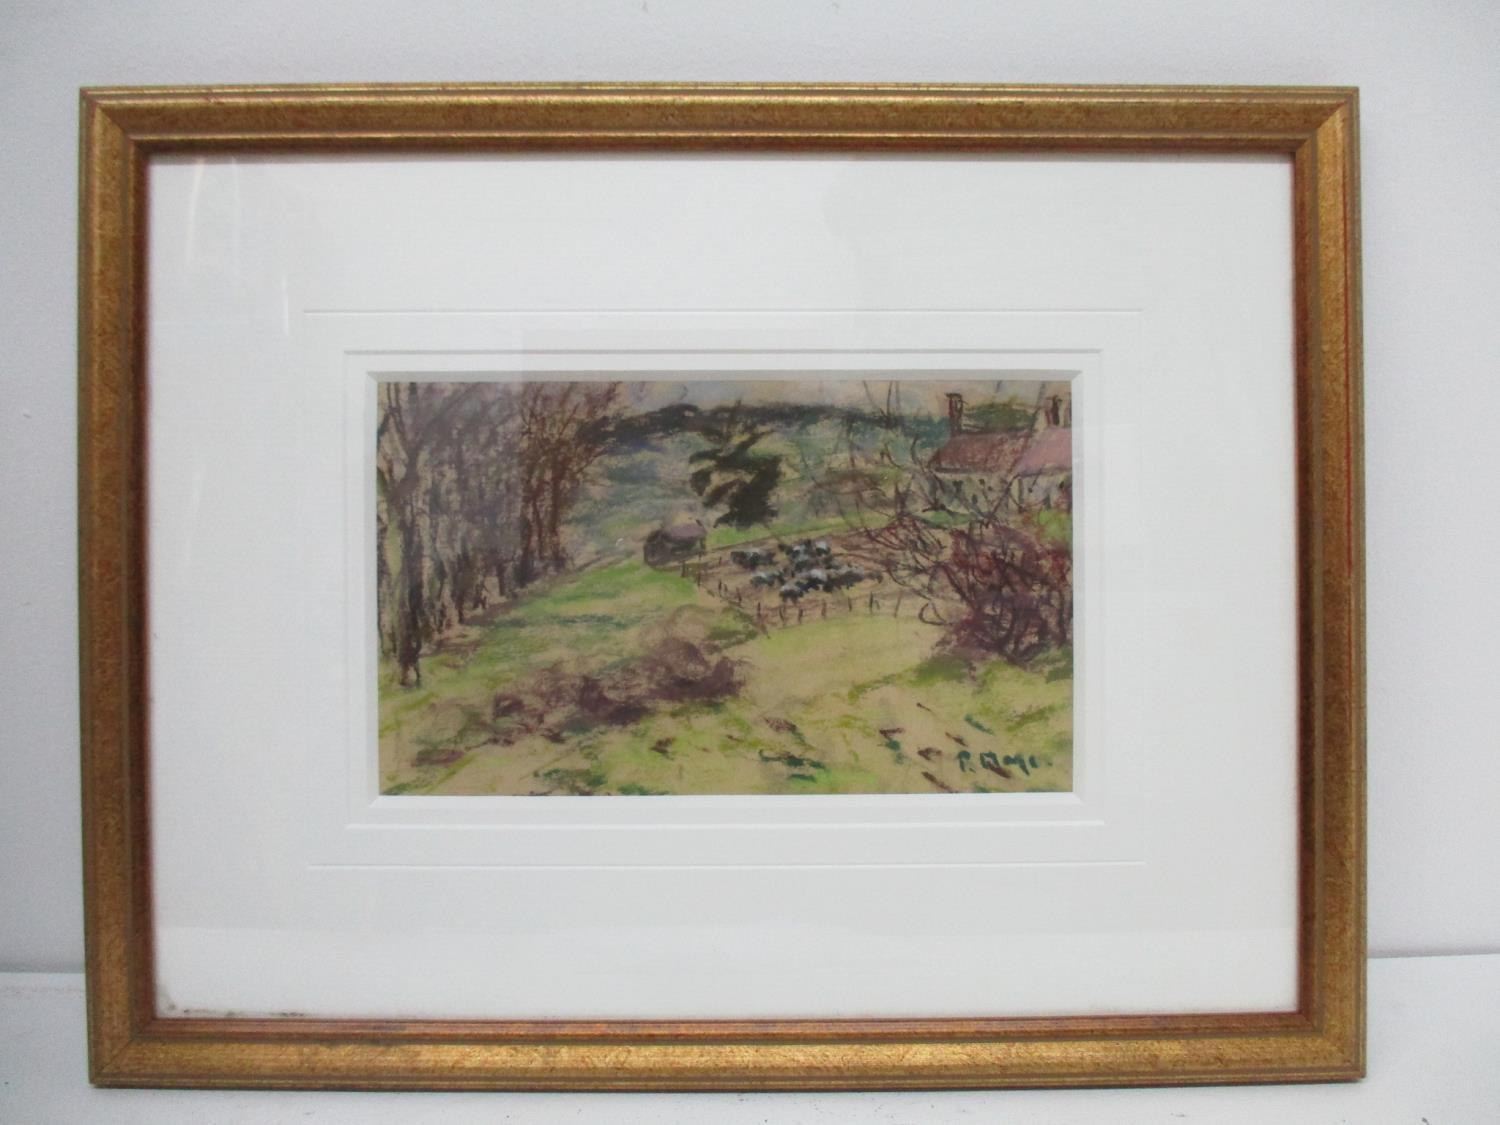 Lot 274 - Paul Lucien Maze 1887-1979, a country scene with animals in a pen, trees and houses, pastel, 5 3/